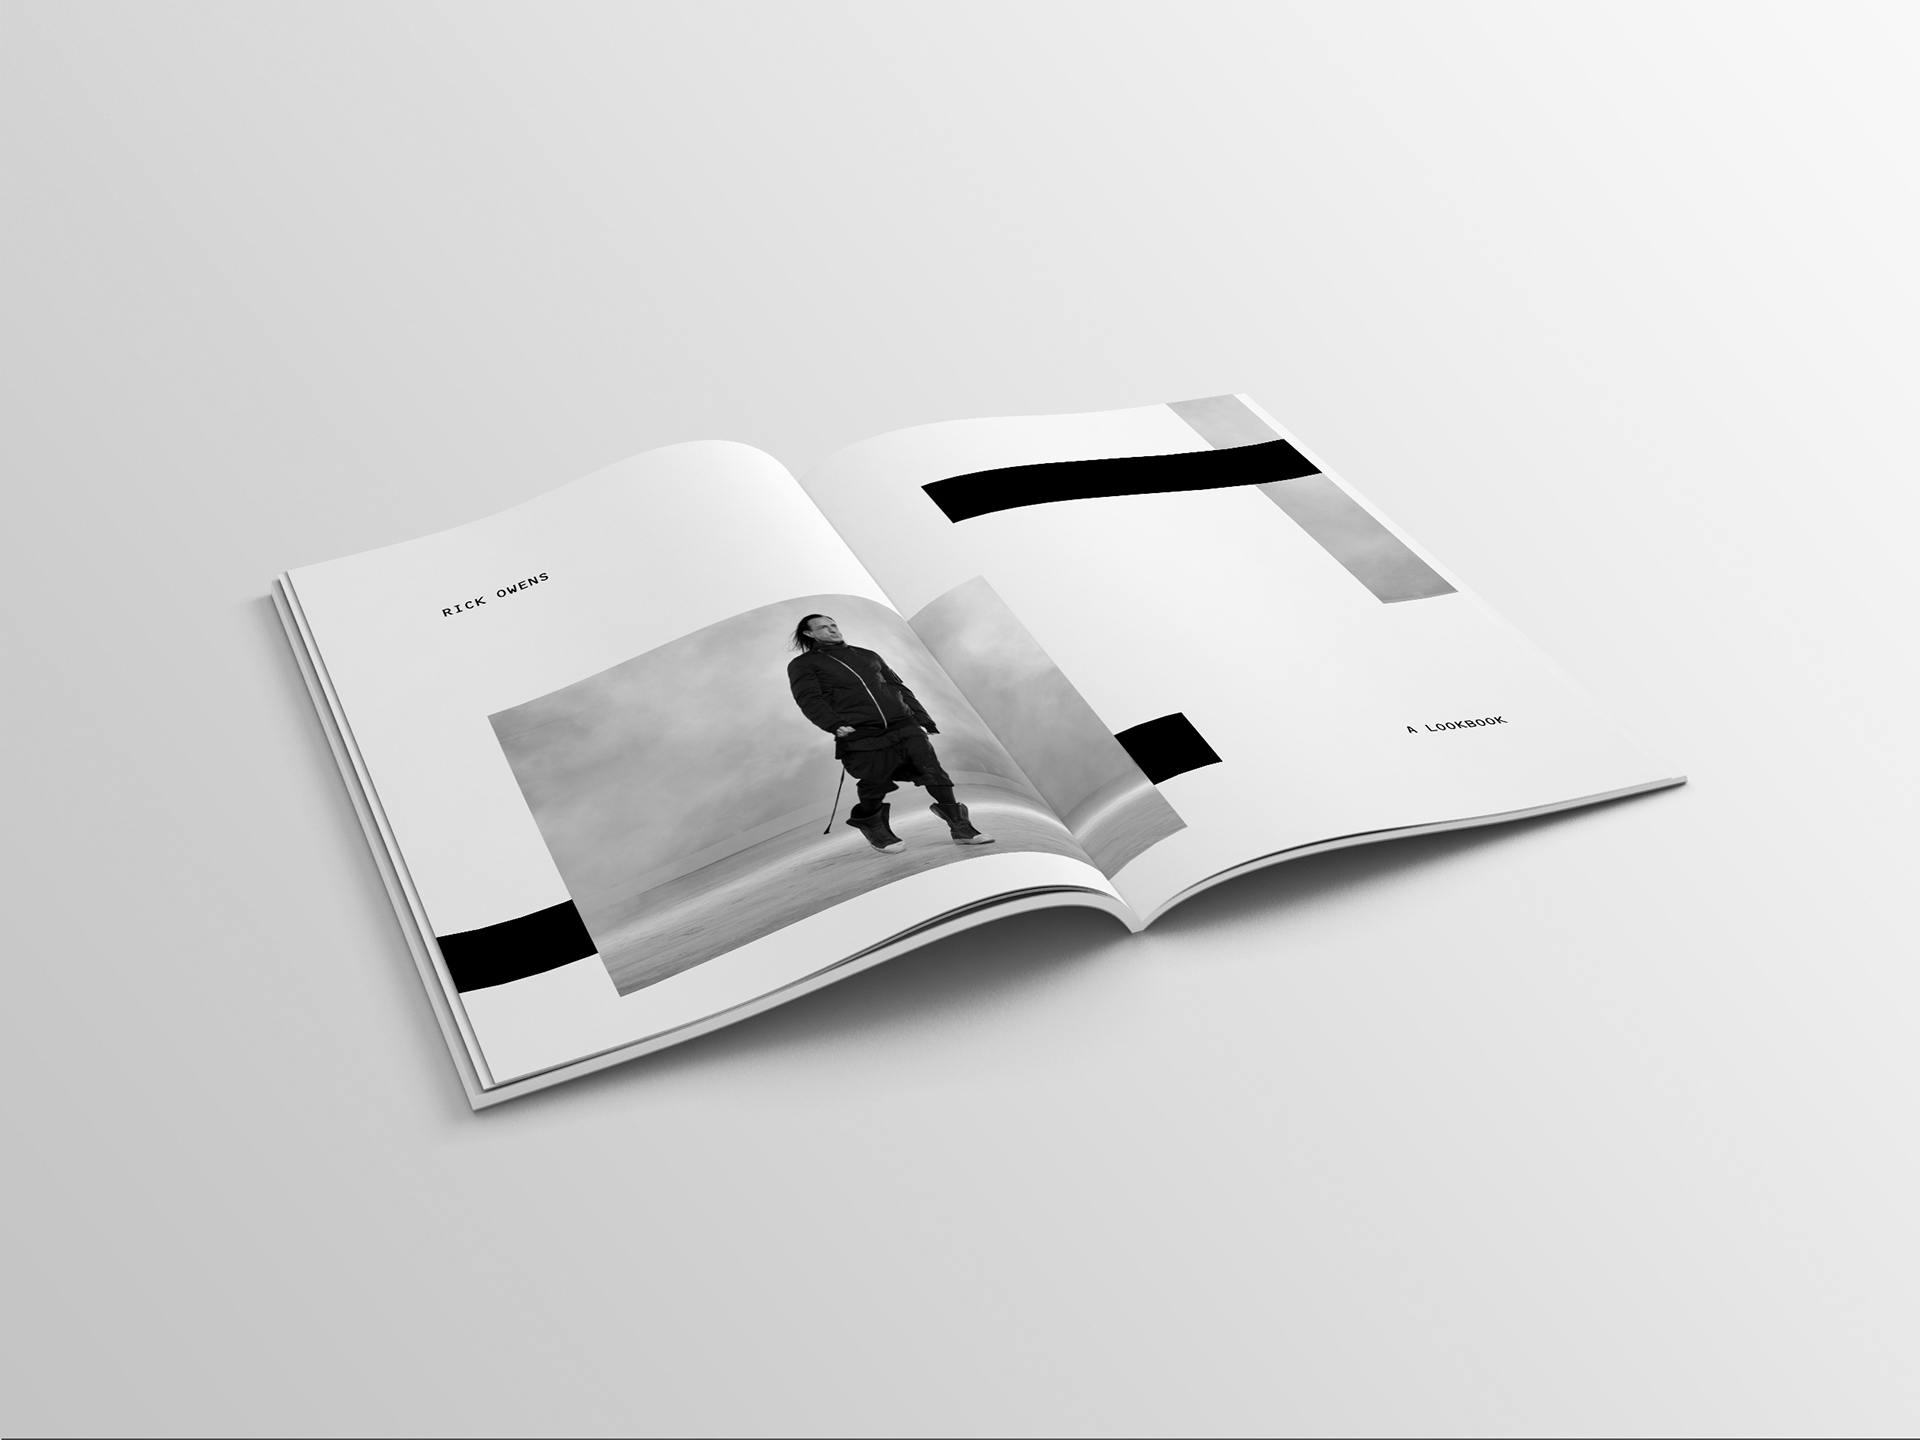 Rick Owens. on Behance.